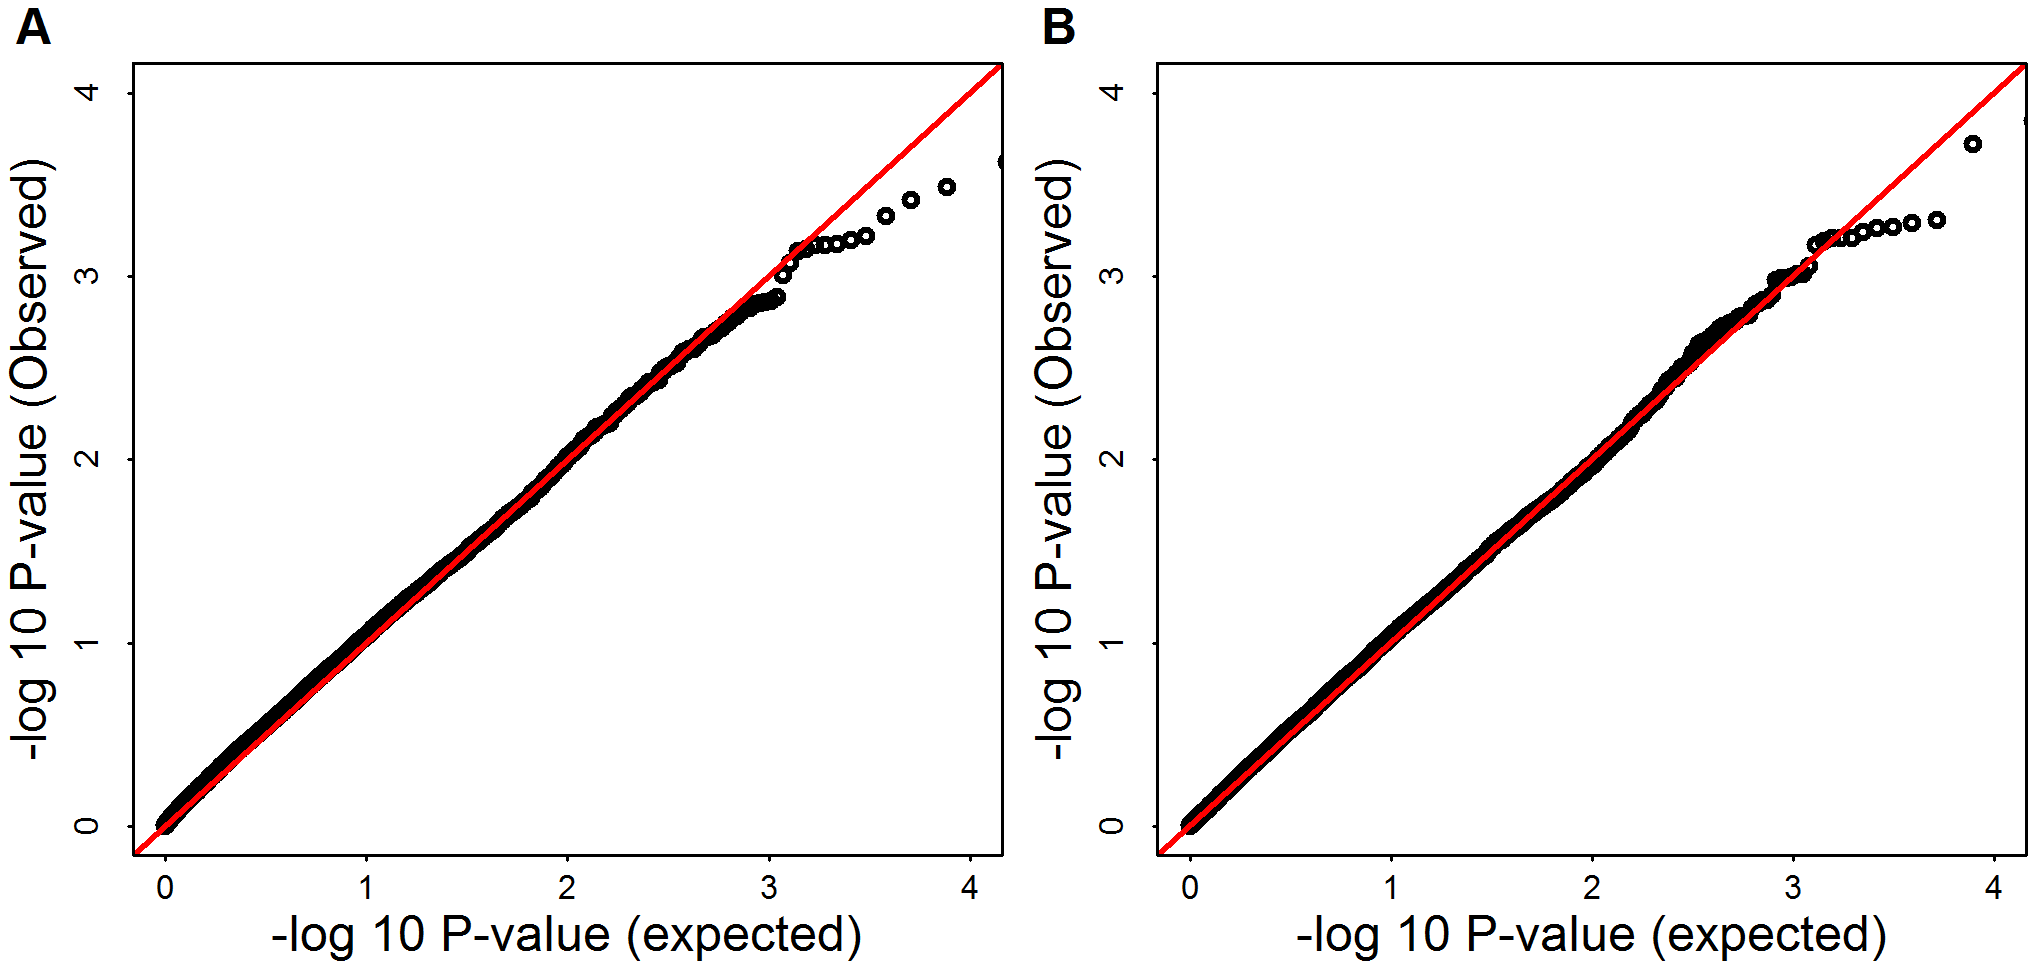 -log10(observed p-values) versus -log10(expected p-values) of SKAT and Burden test for Mega-analysis.